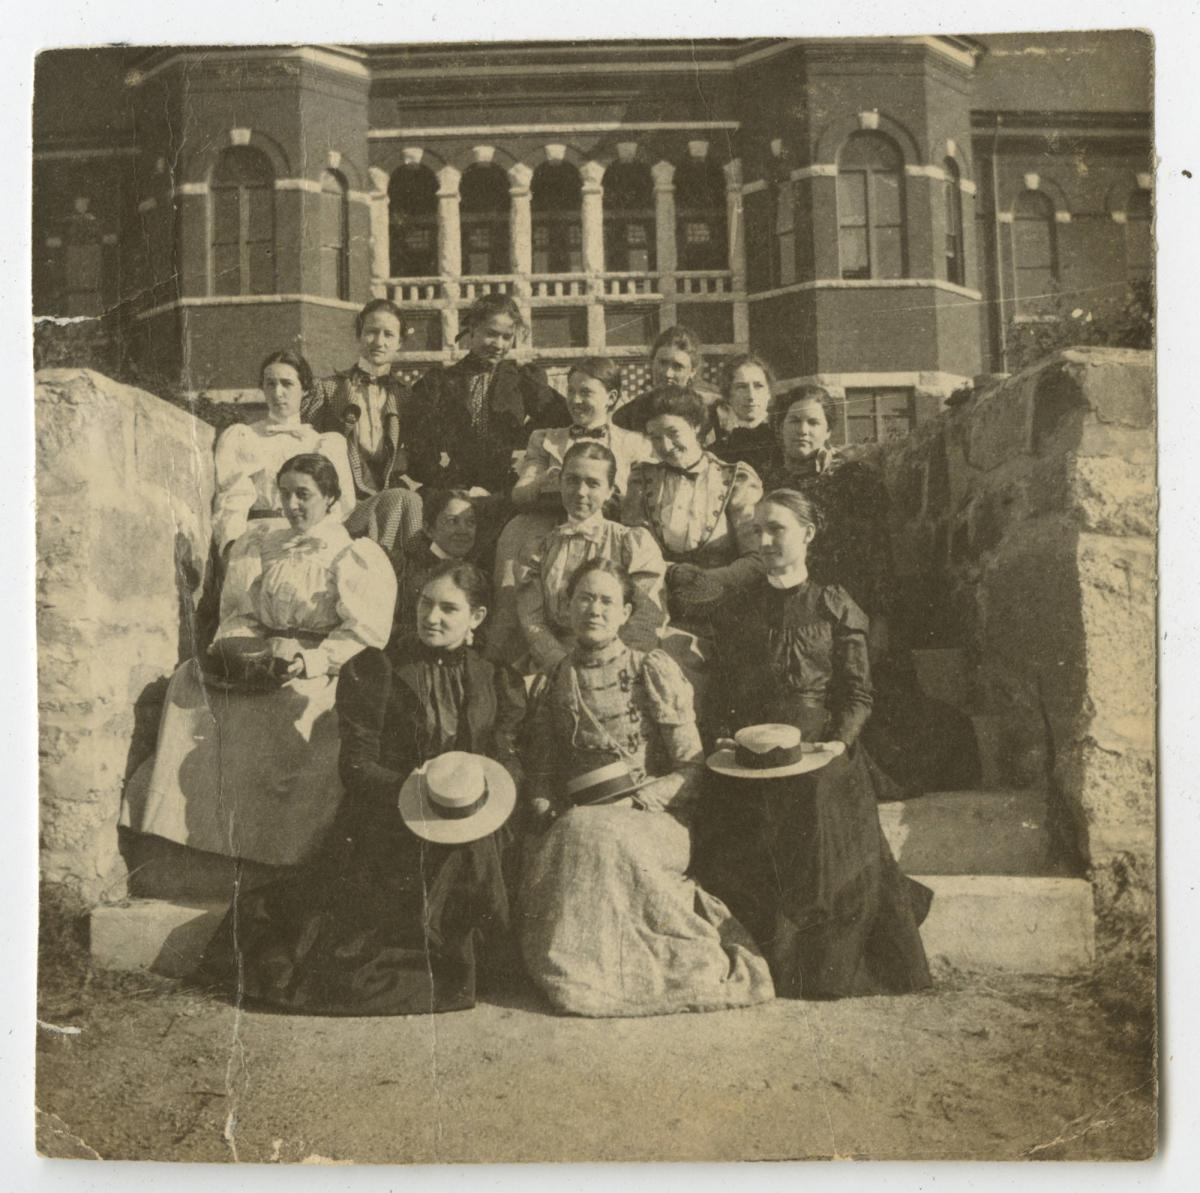 Thirteen students sit on the steps of a campus building for a group photo.